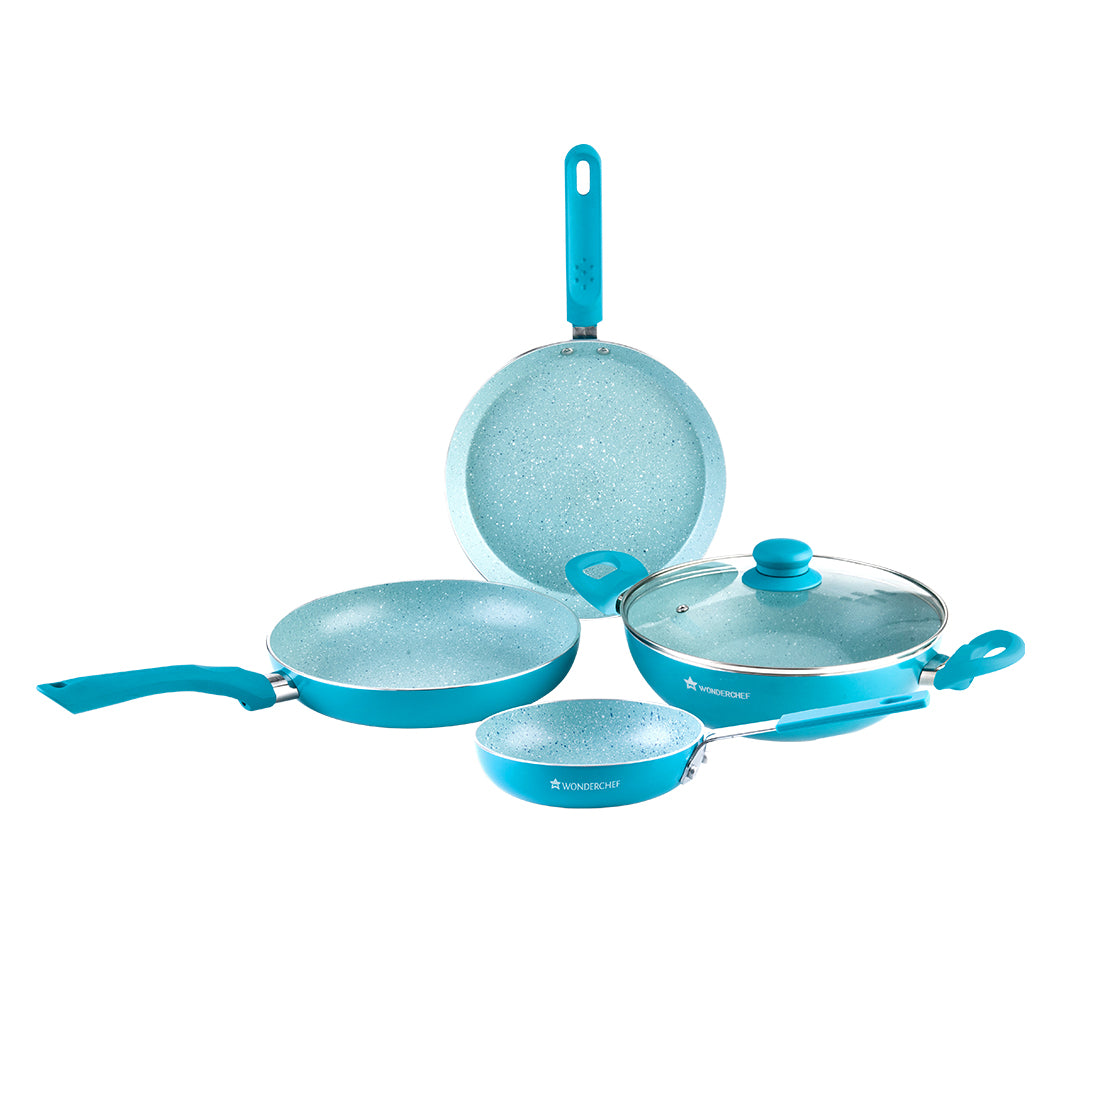 Royal Velvet Aluminium Nonstick Cookware Set, 5Pc, Aqua